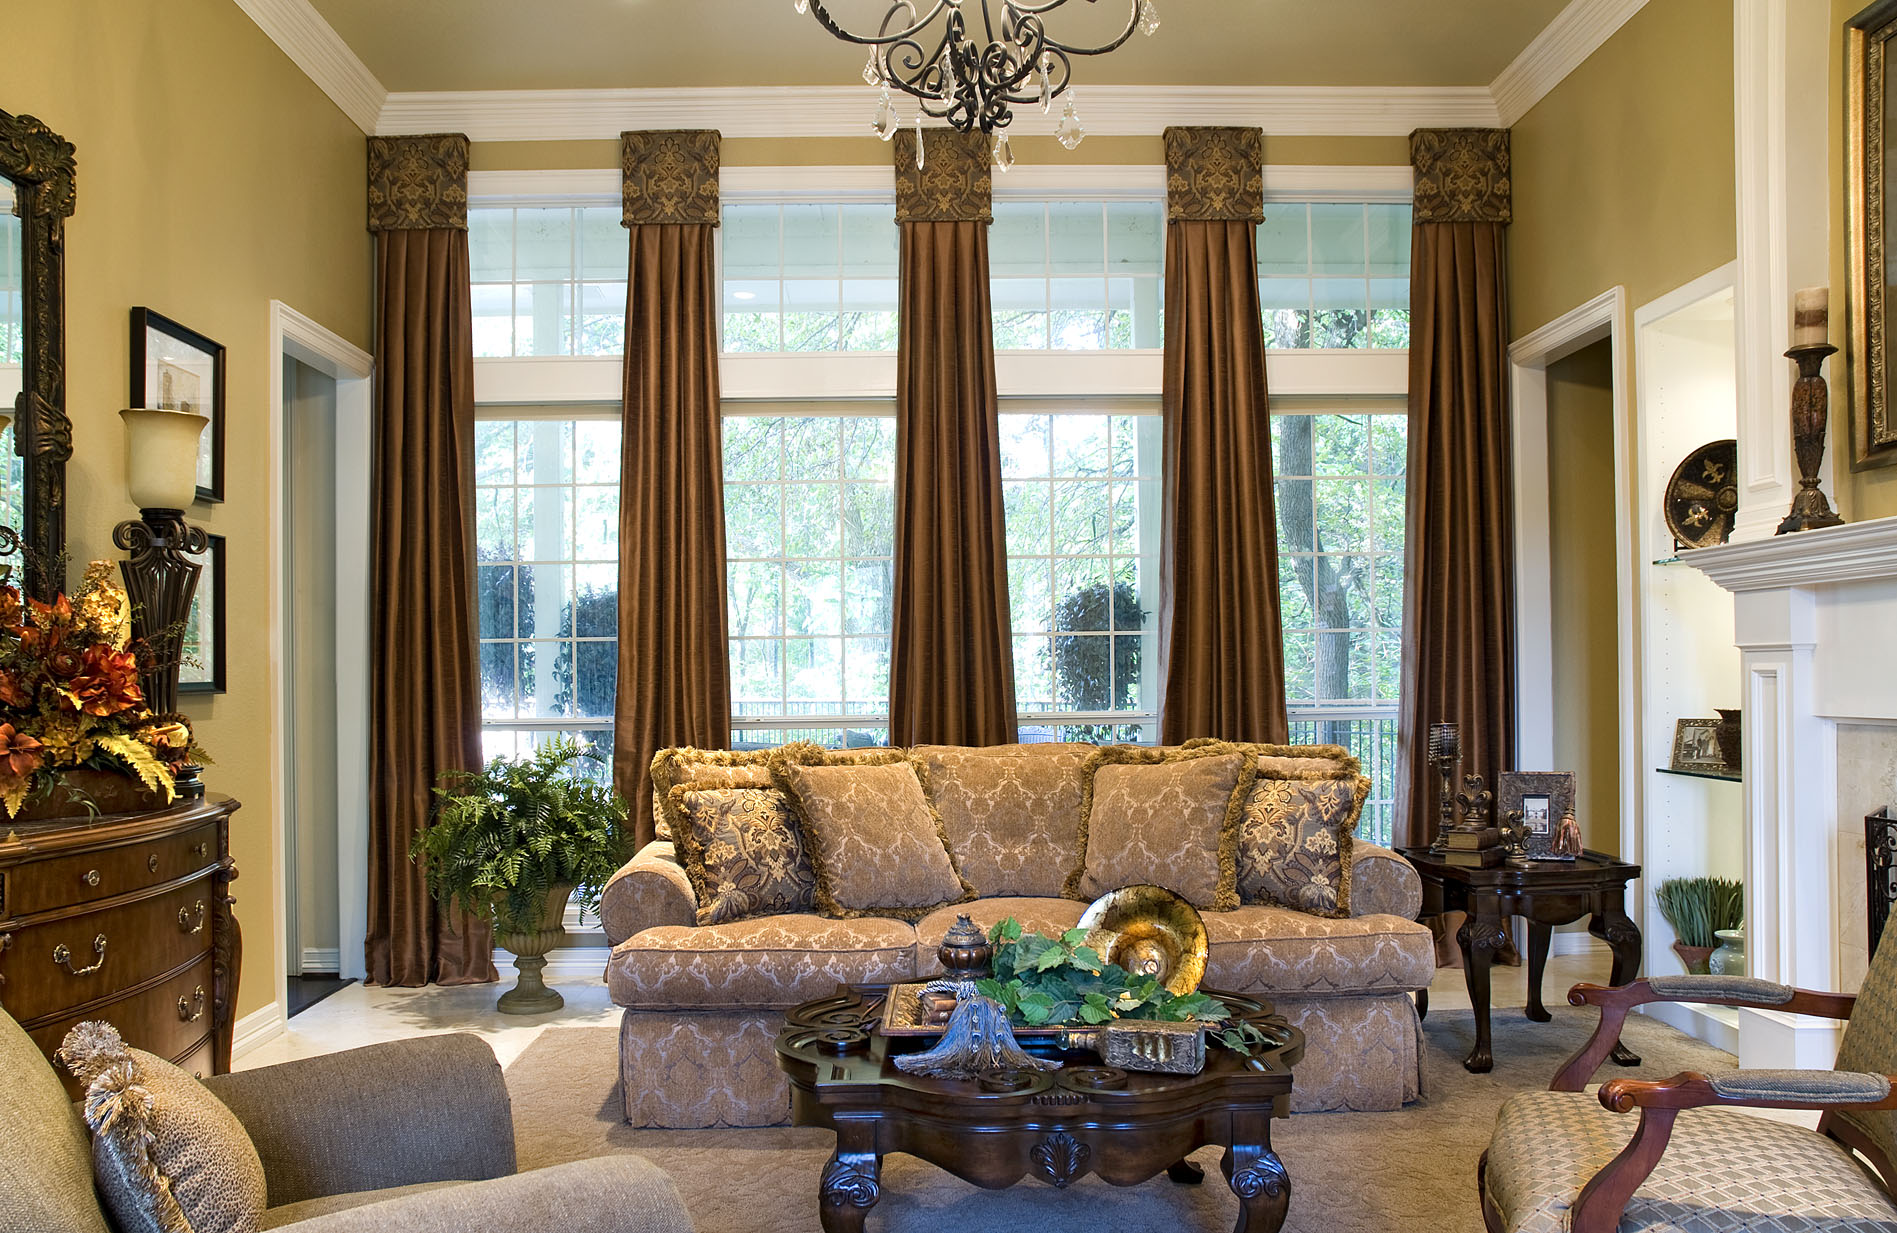 Living Room Window Treatments 1897 x 1233